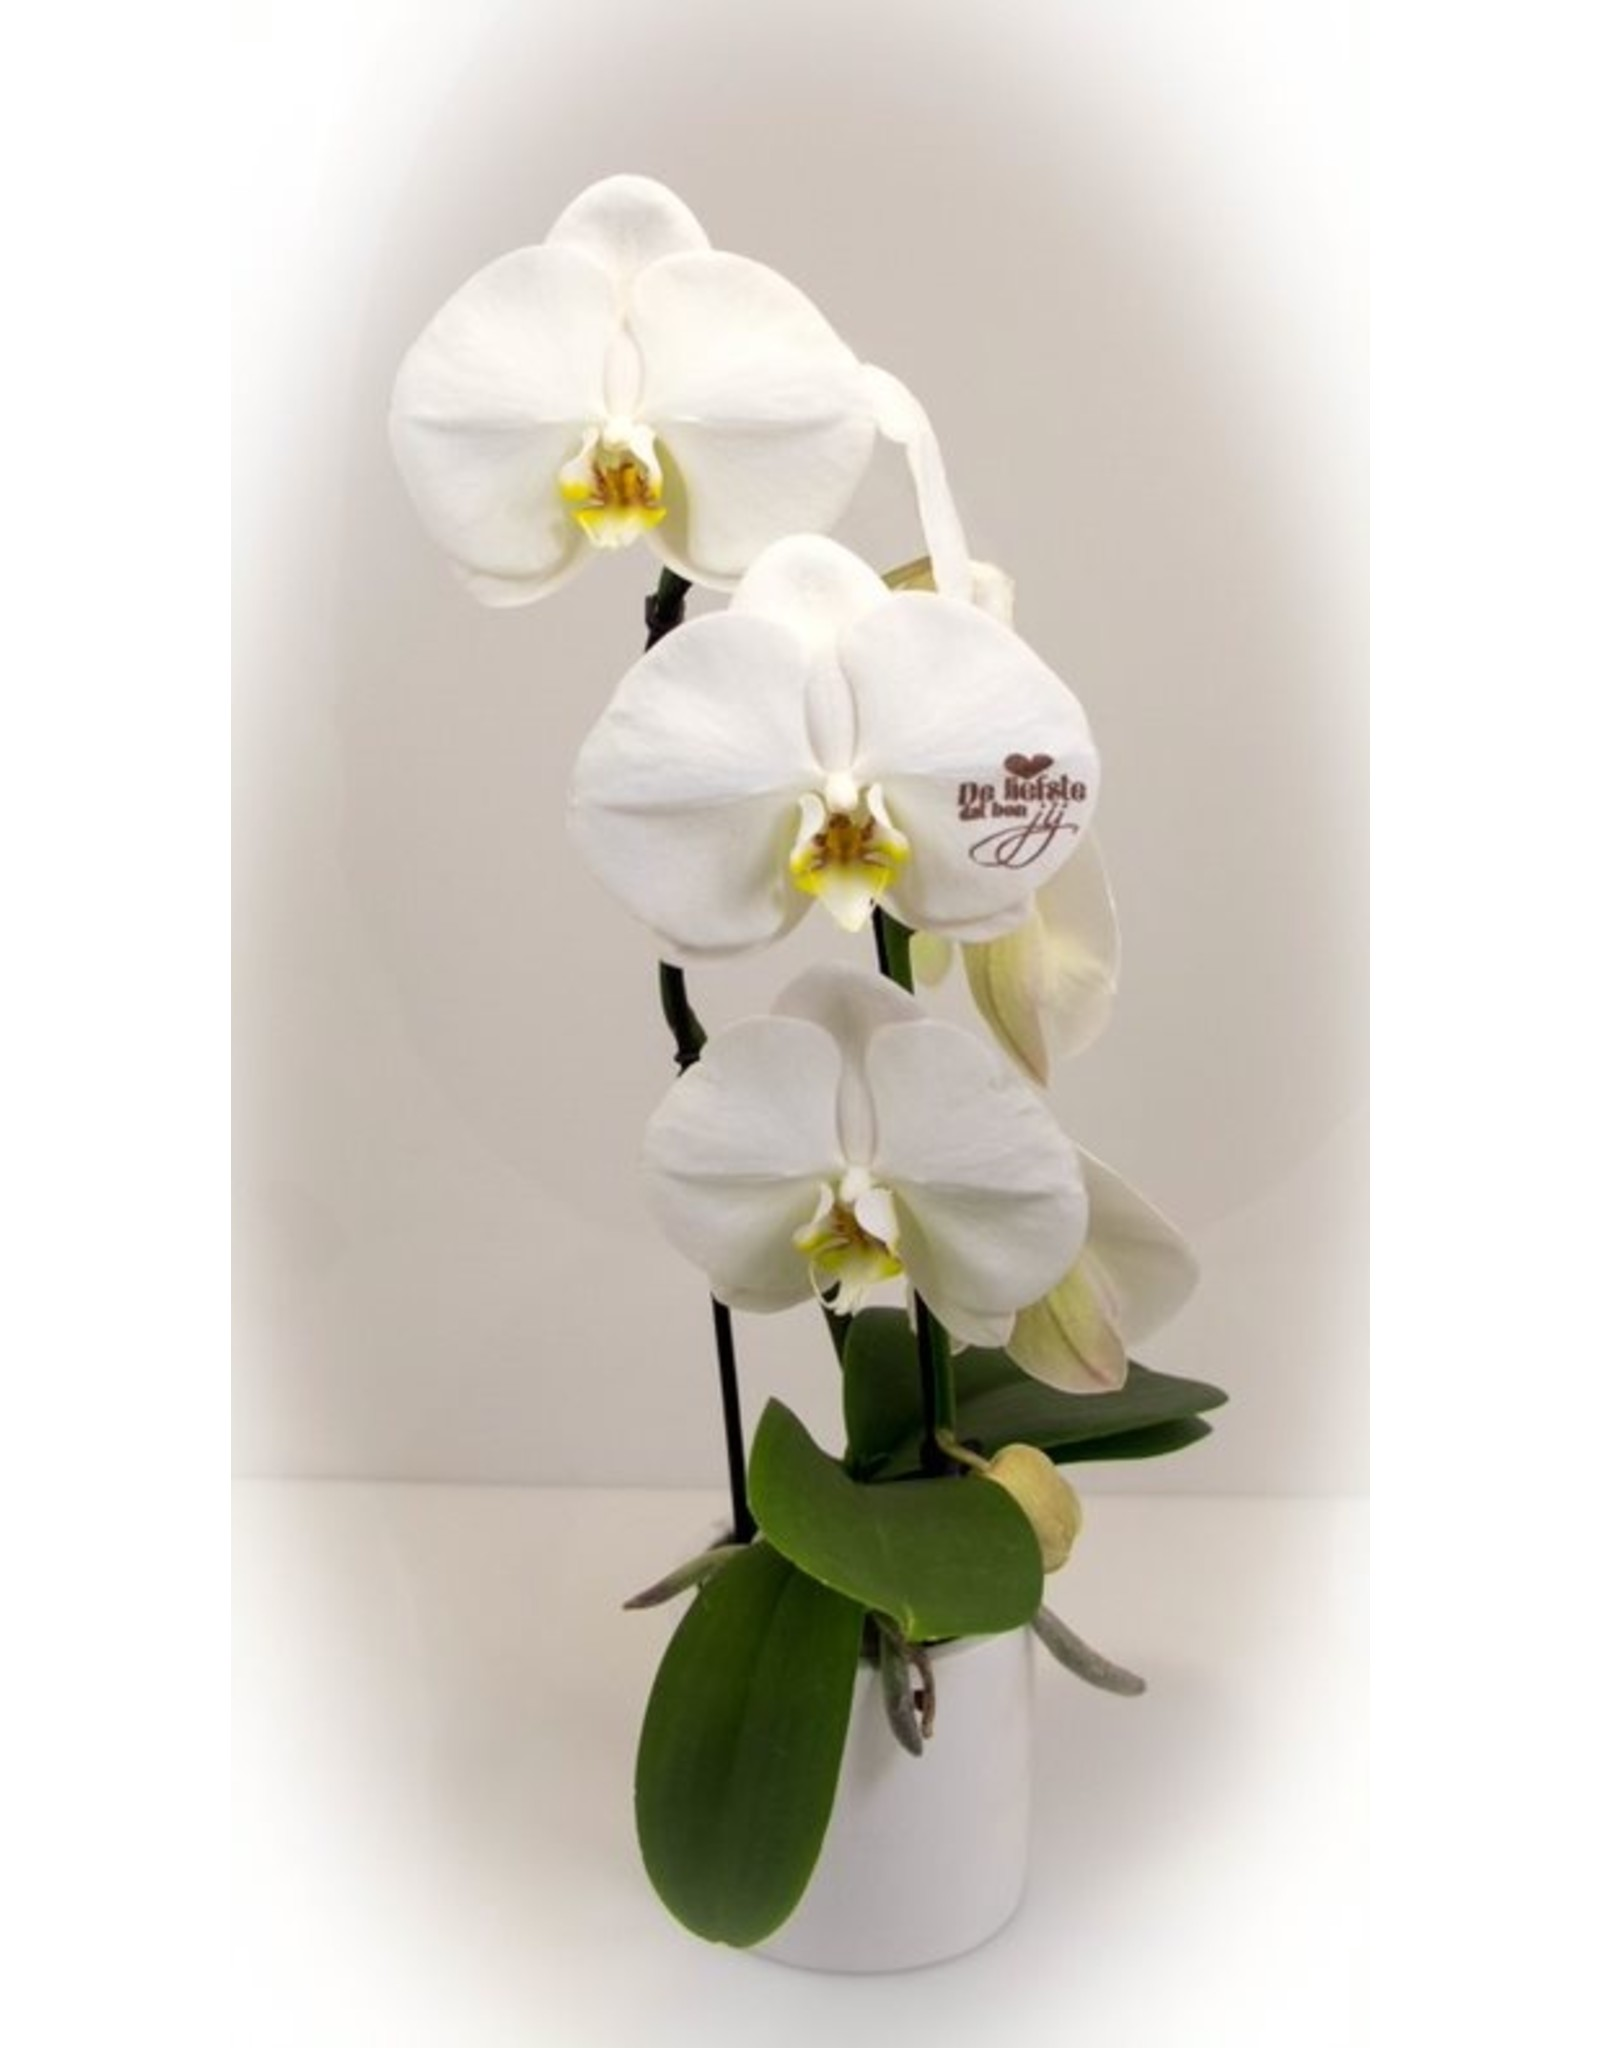 Magic Flowers Orchidee - De Liefste dat ben jij